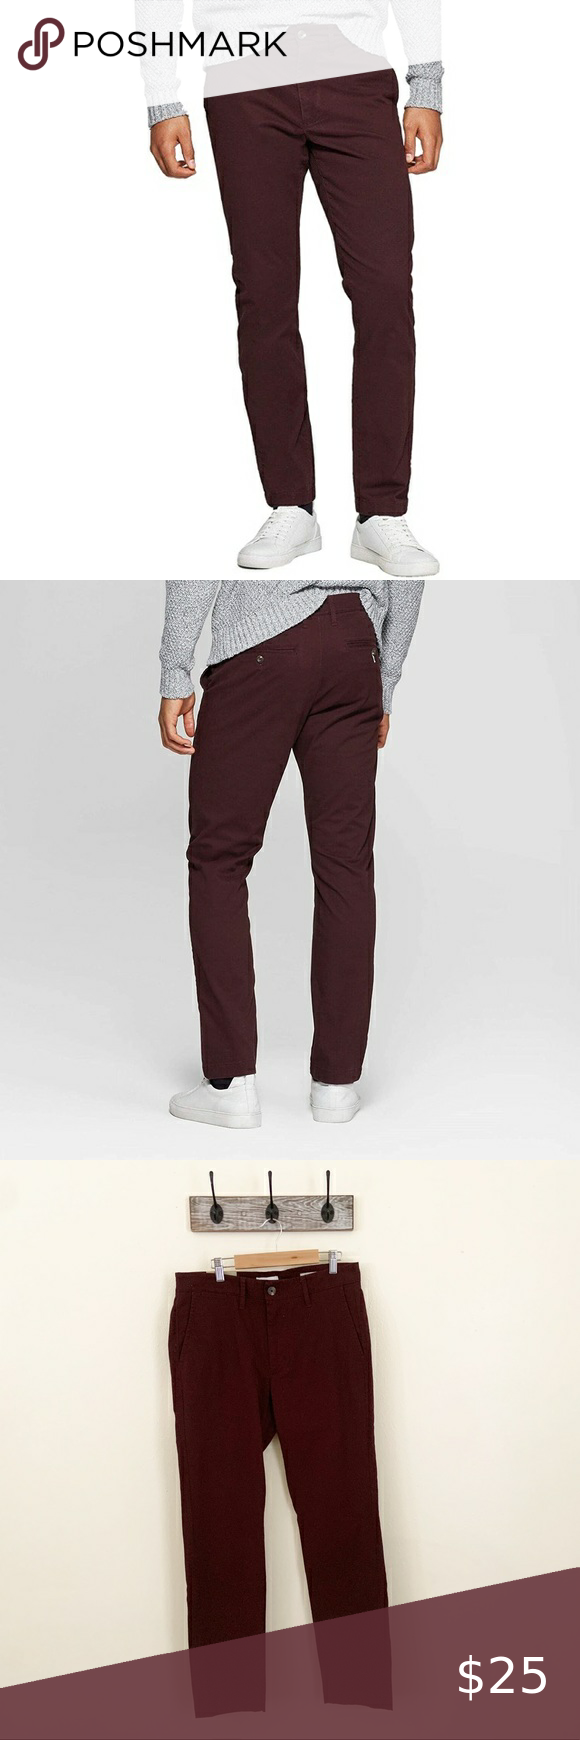 NWT Goodfellow Hennepin Skinny Chino Maroon 31x30 Brand new with tags - Original tags attached Men's